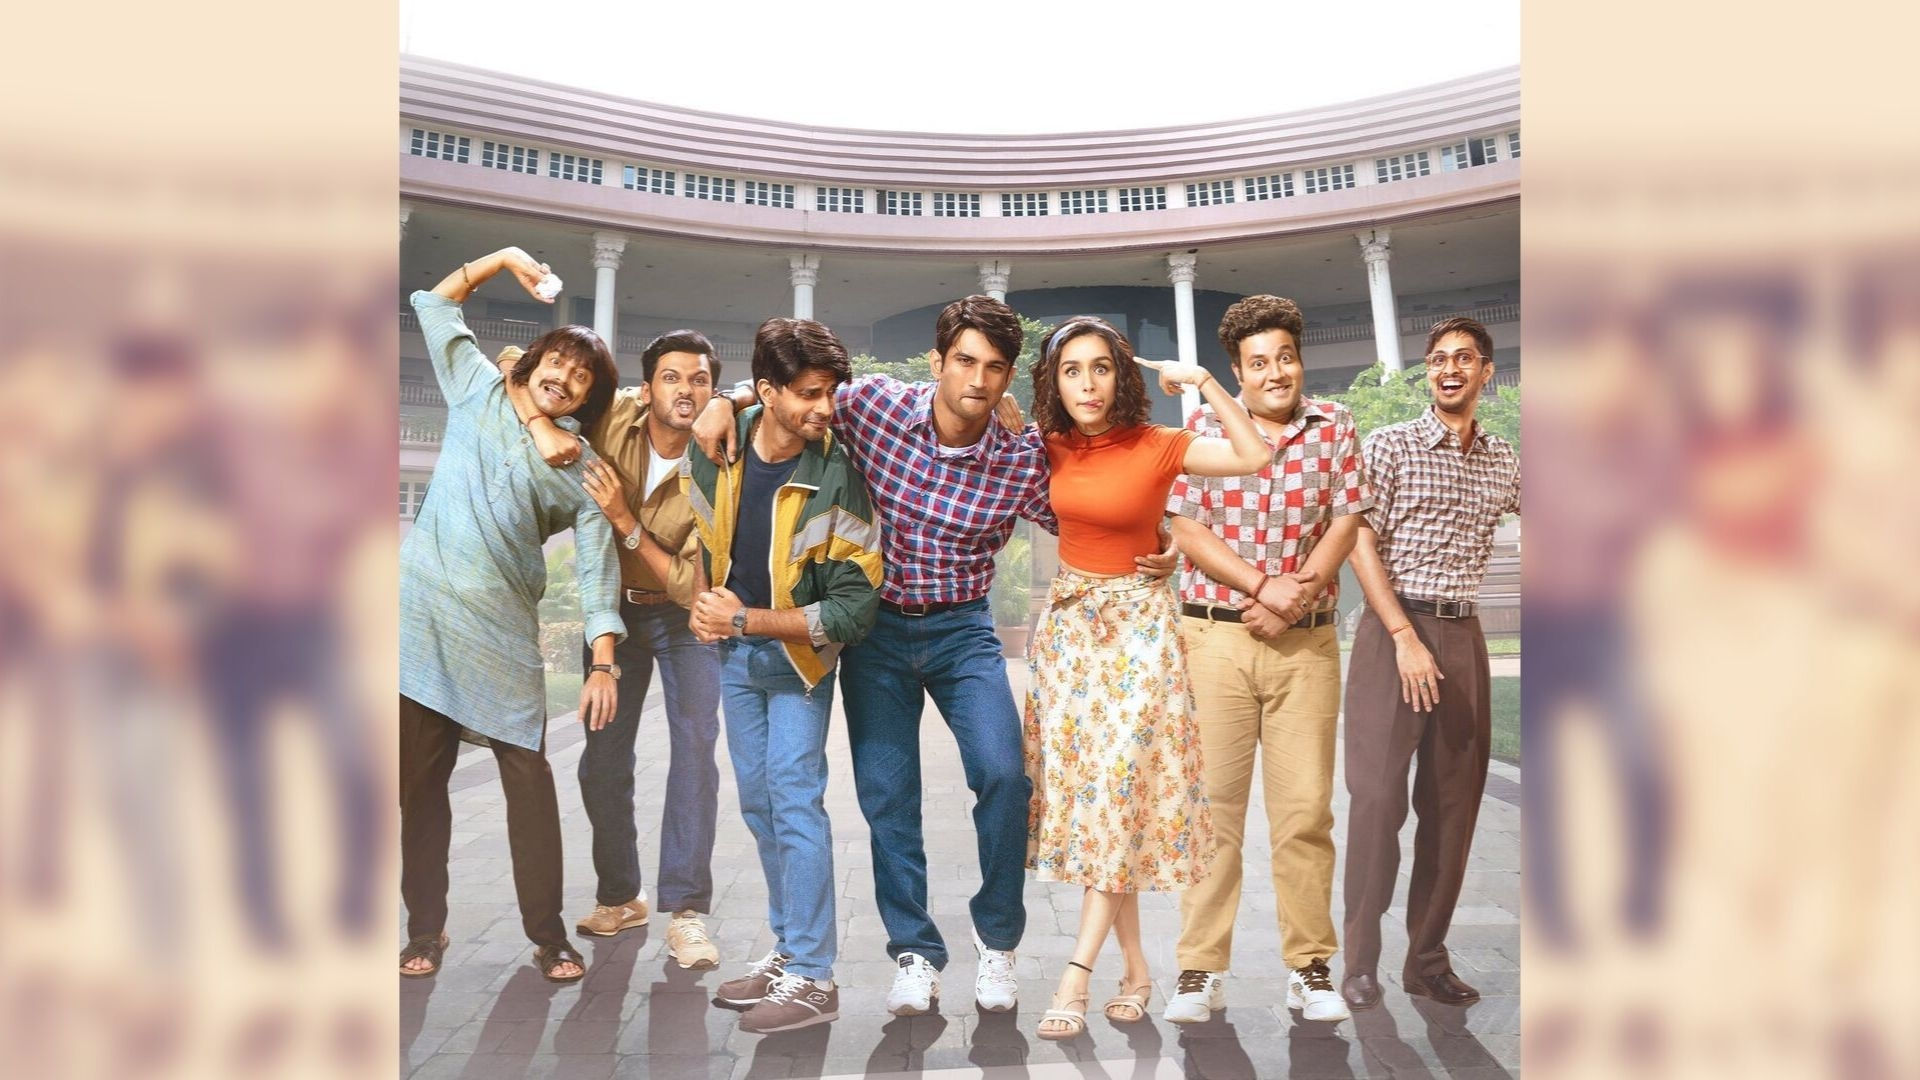 Sushant's 'Chhichhore' Hits Rs 150 Cr at the Box Office in a Month